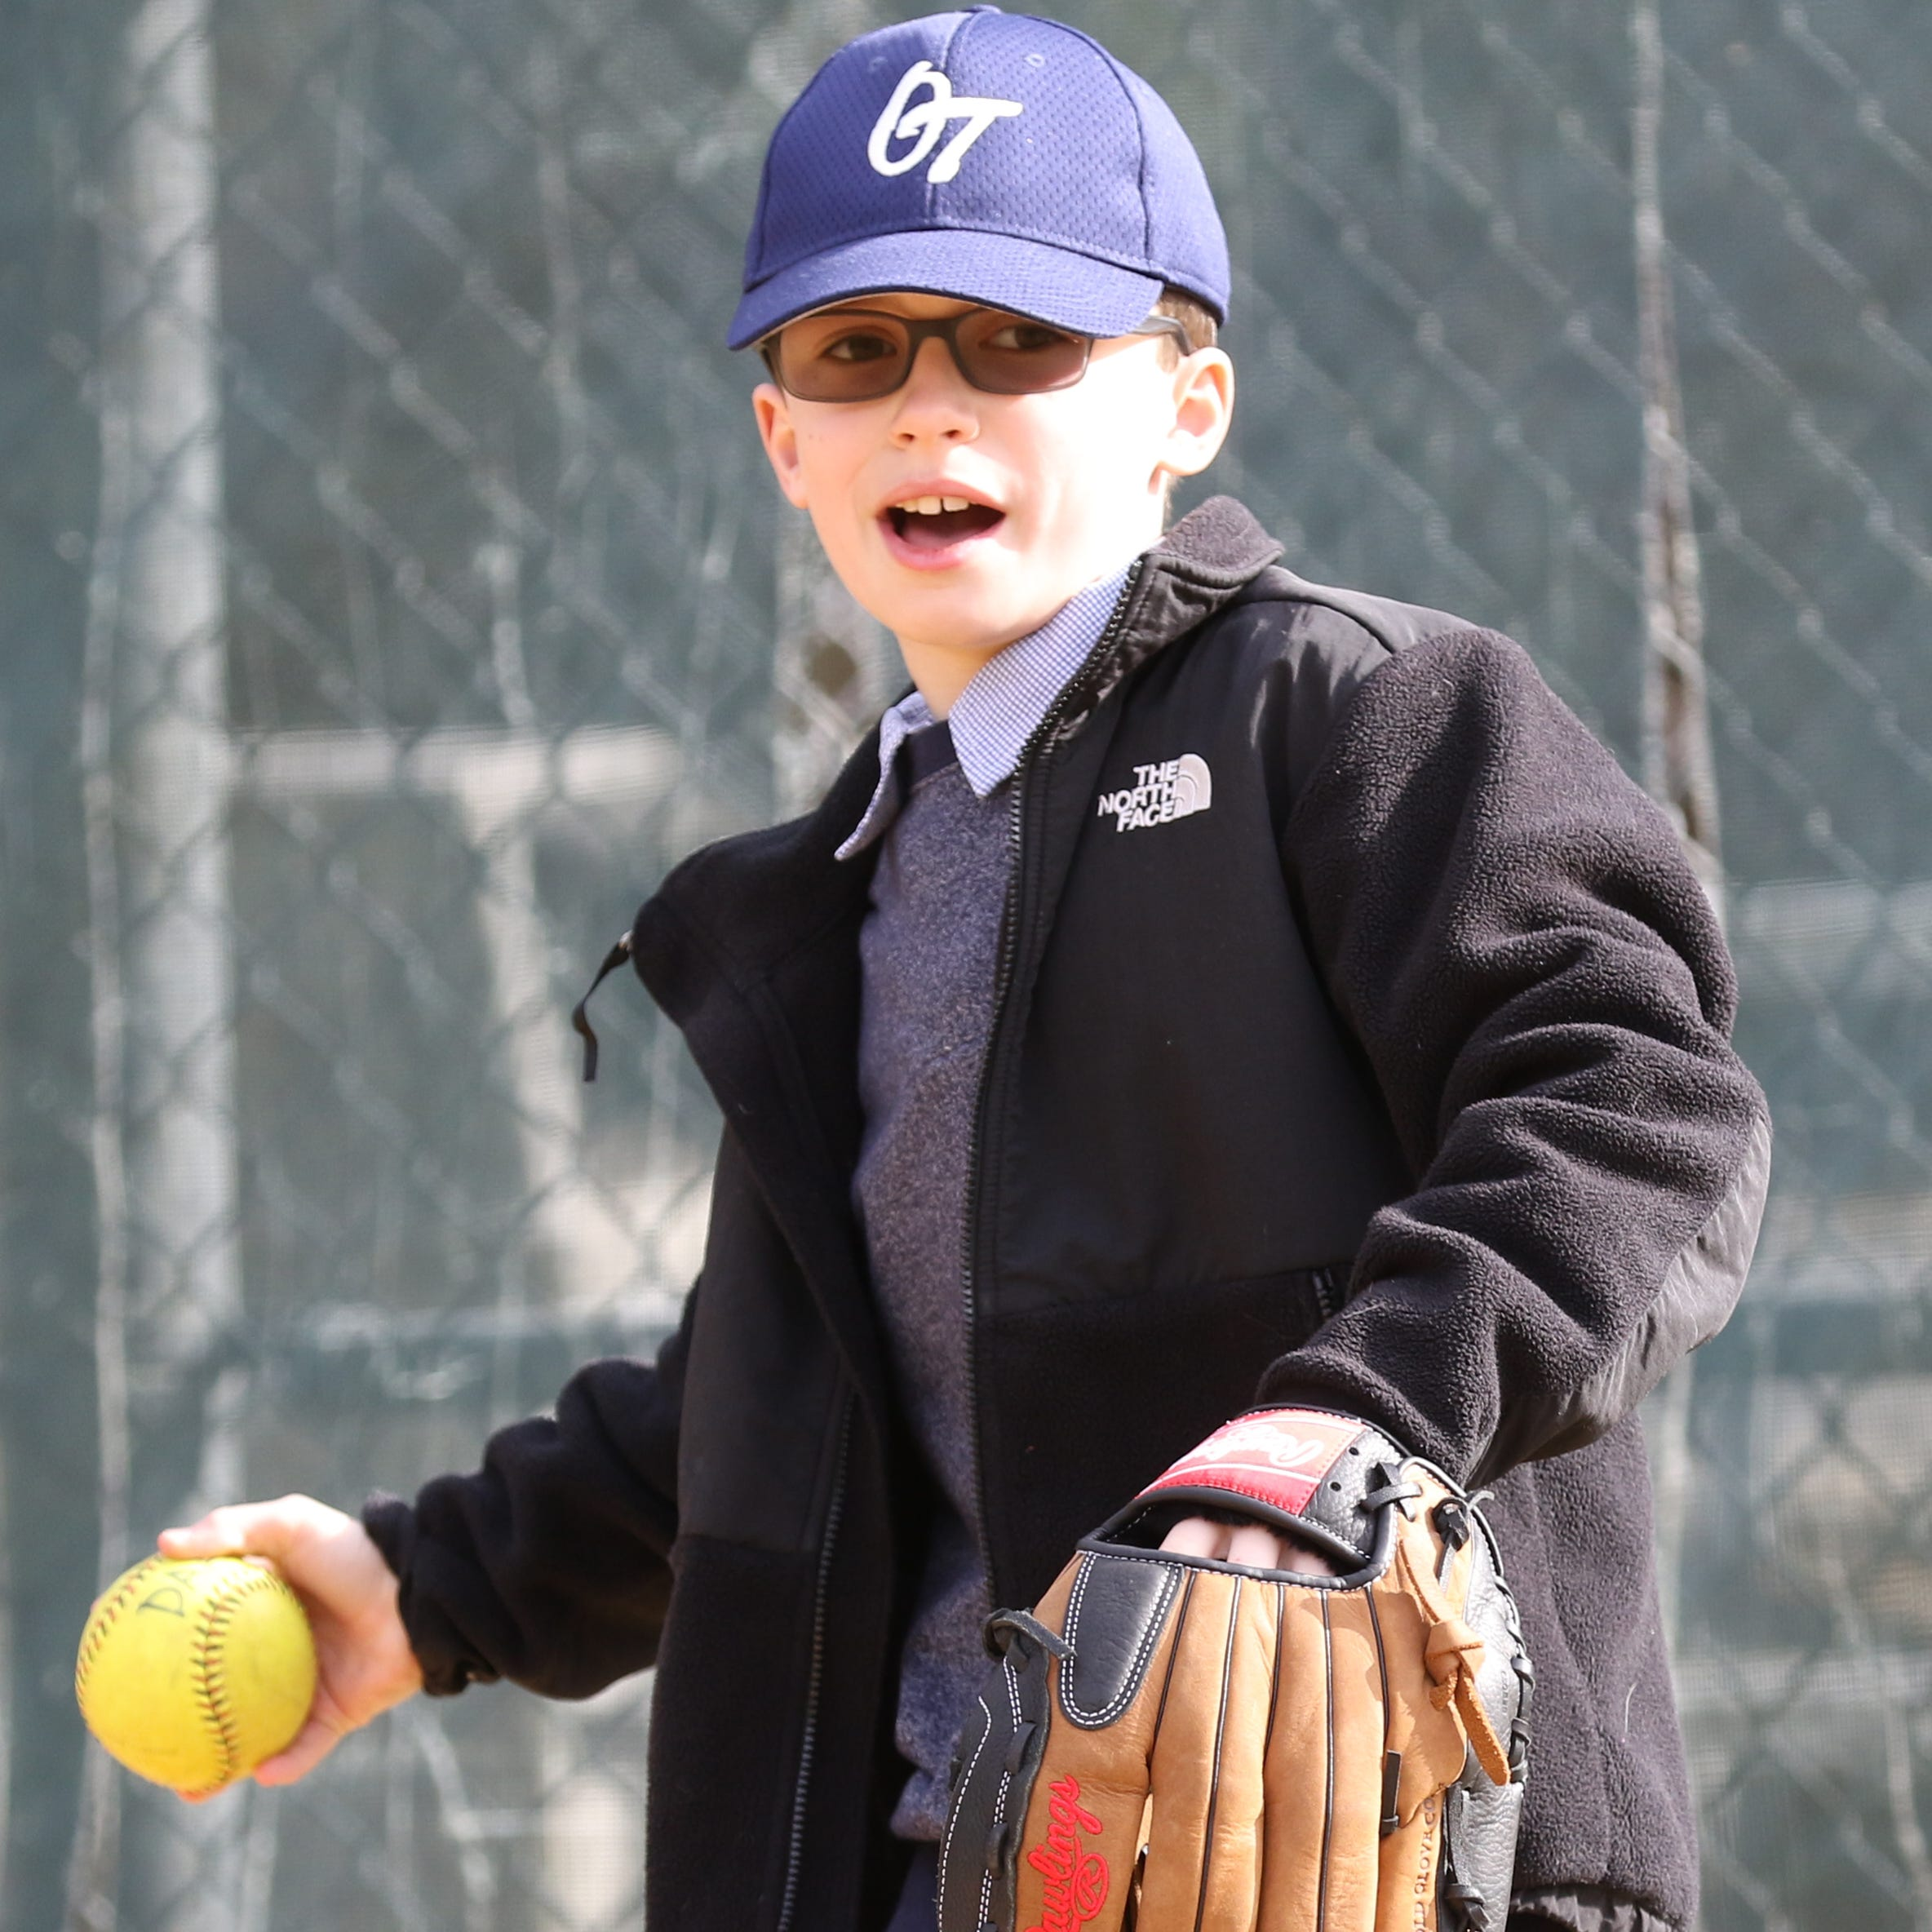 Old Tappan boy told he can't be on a softball team with his sisters